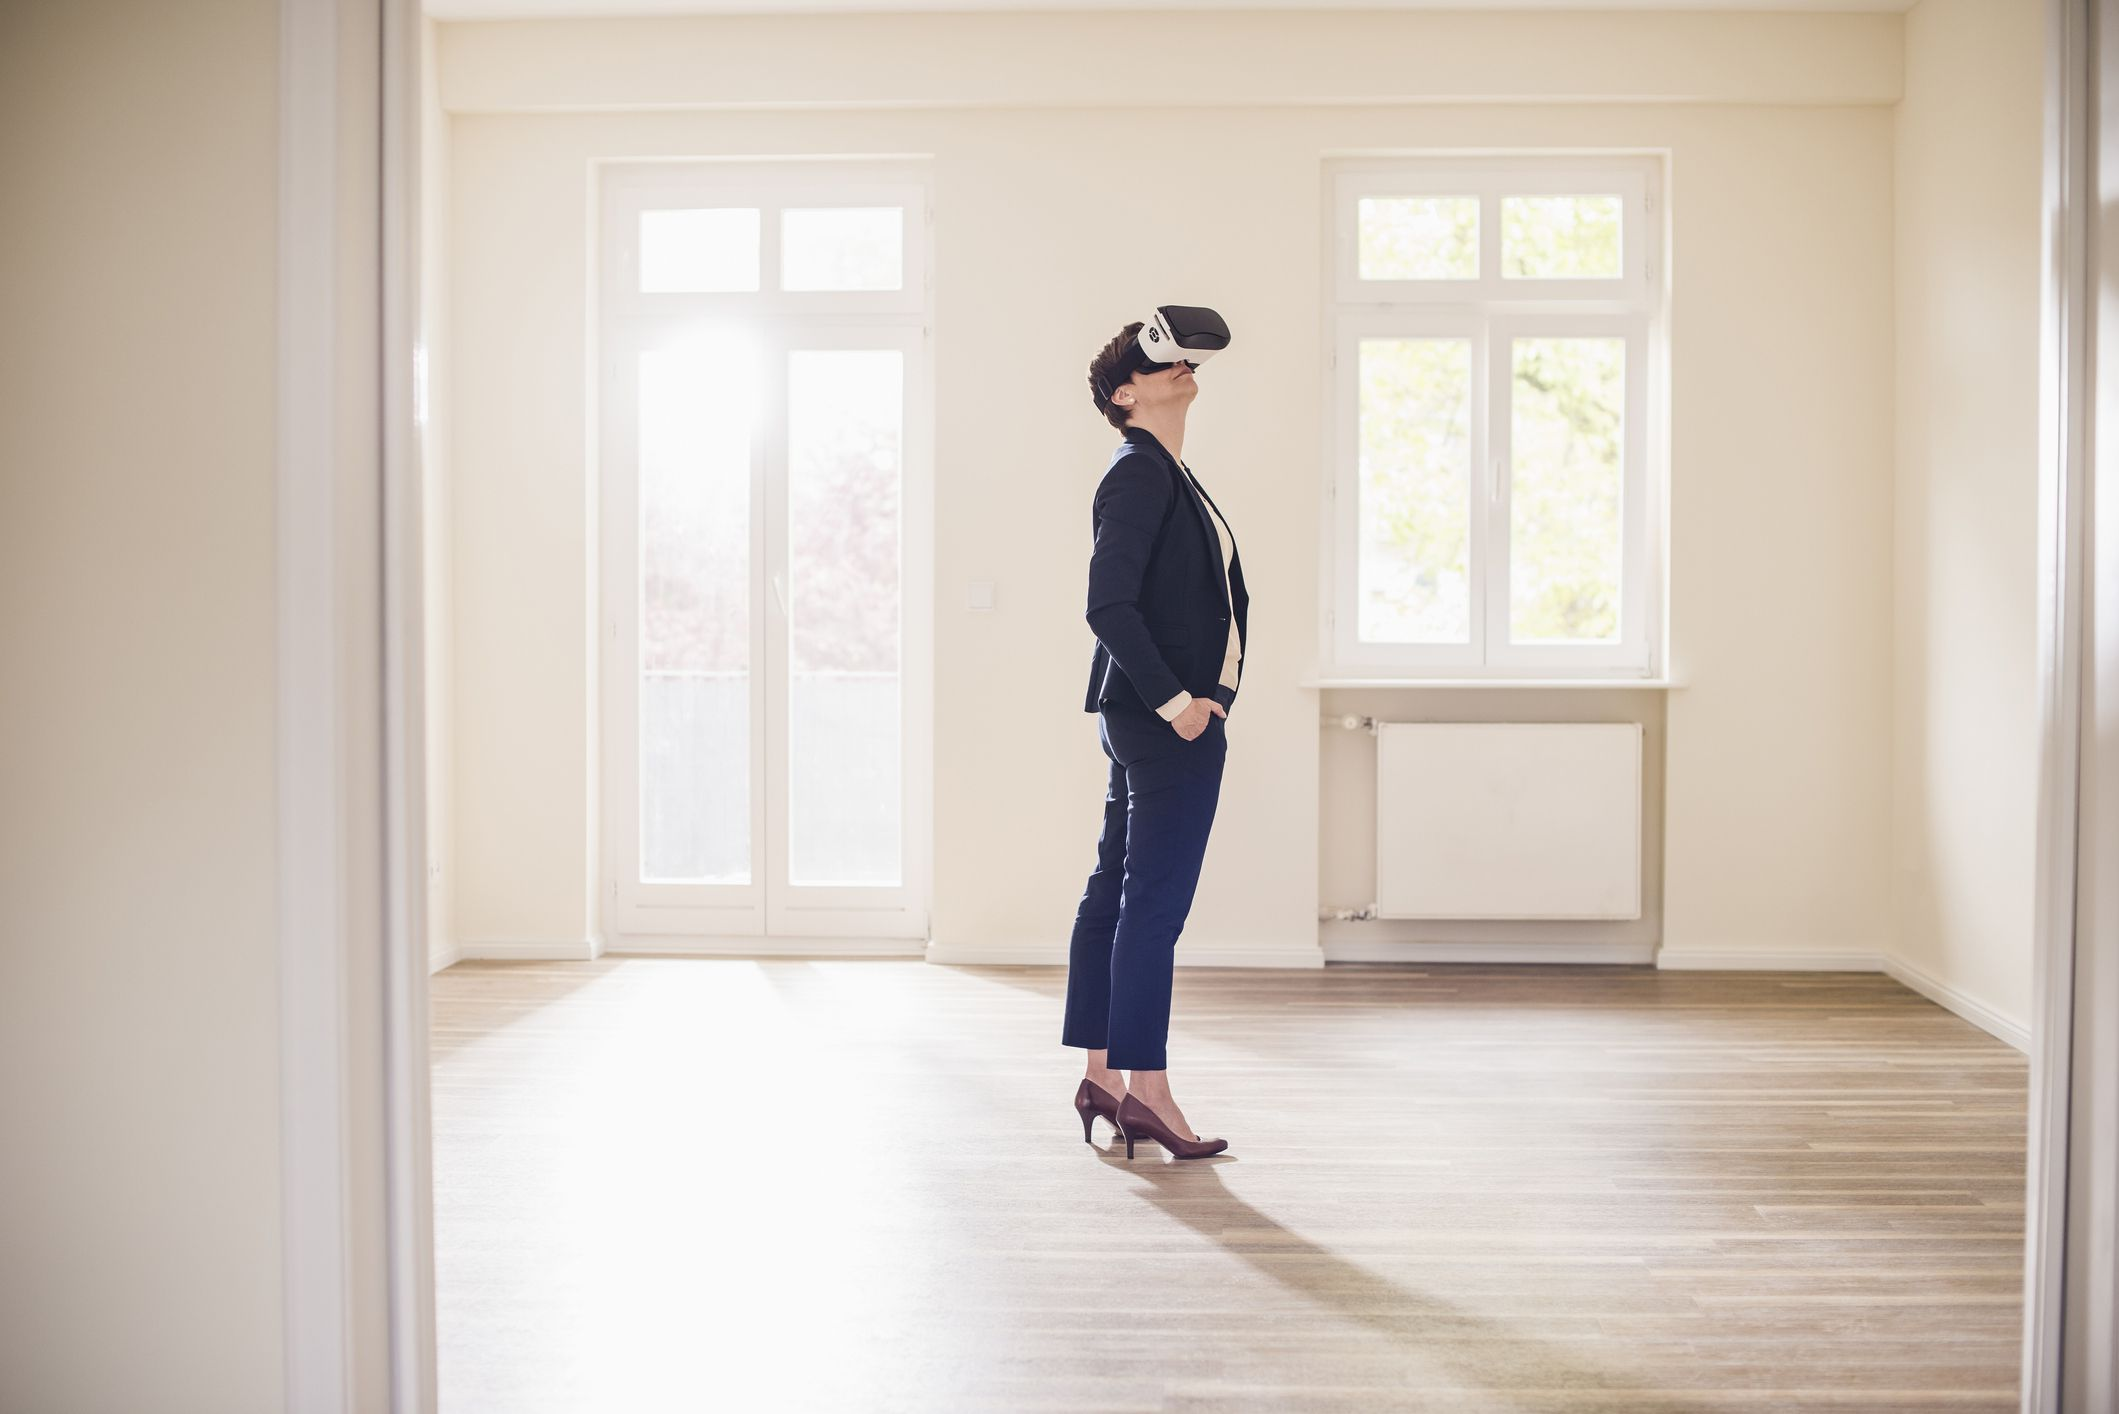 Someone looking around an empty apartment wearing VR glasses.